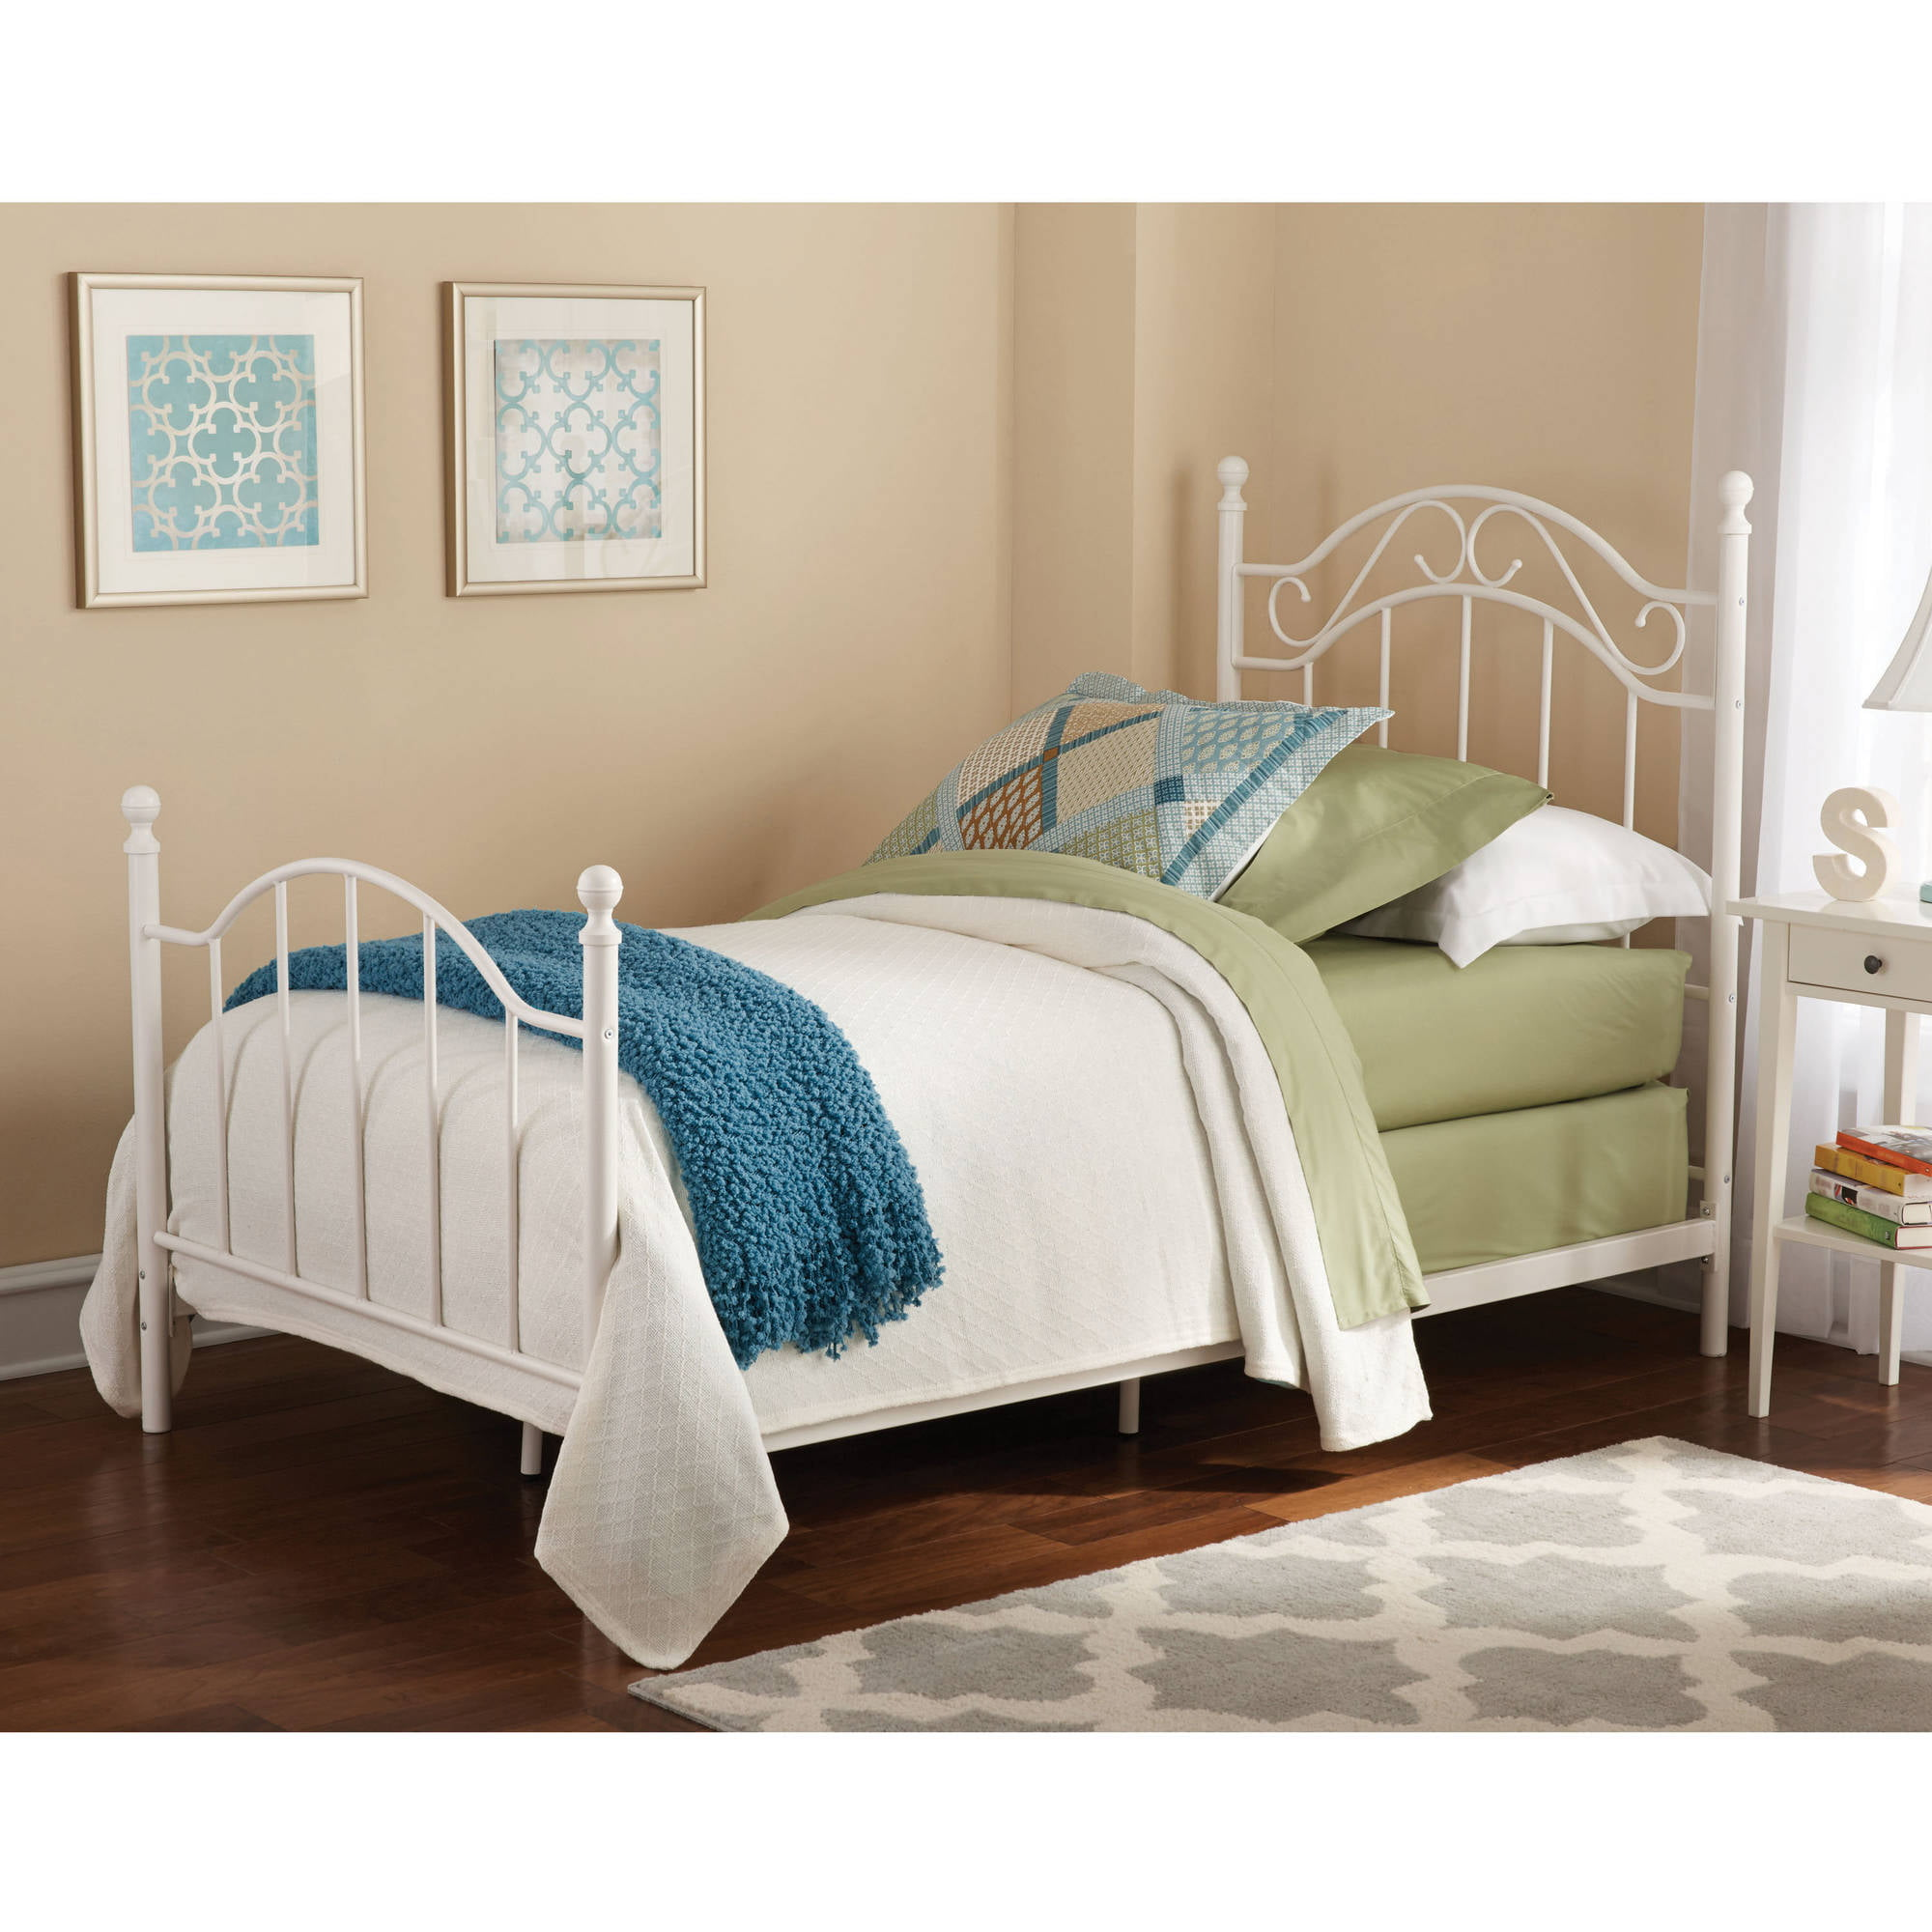 bed girls youtube twin beds canopy watch for